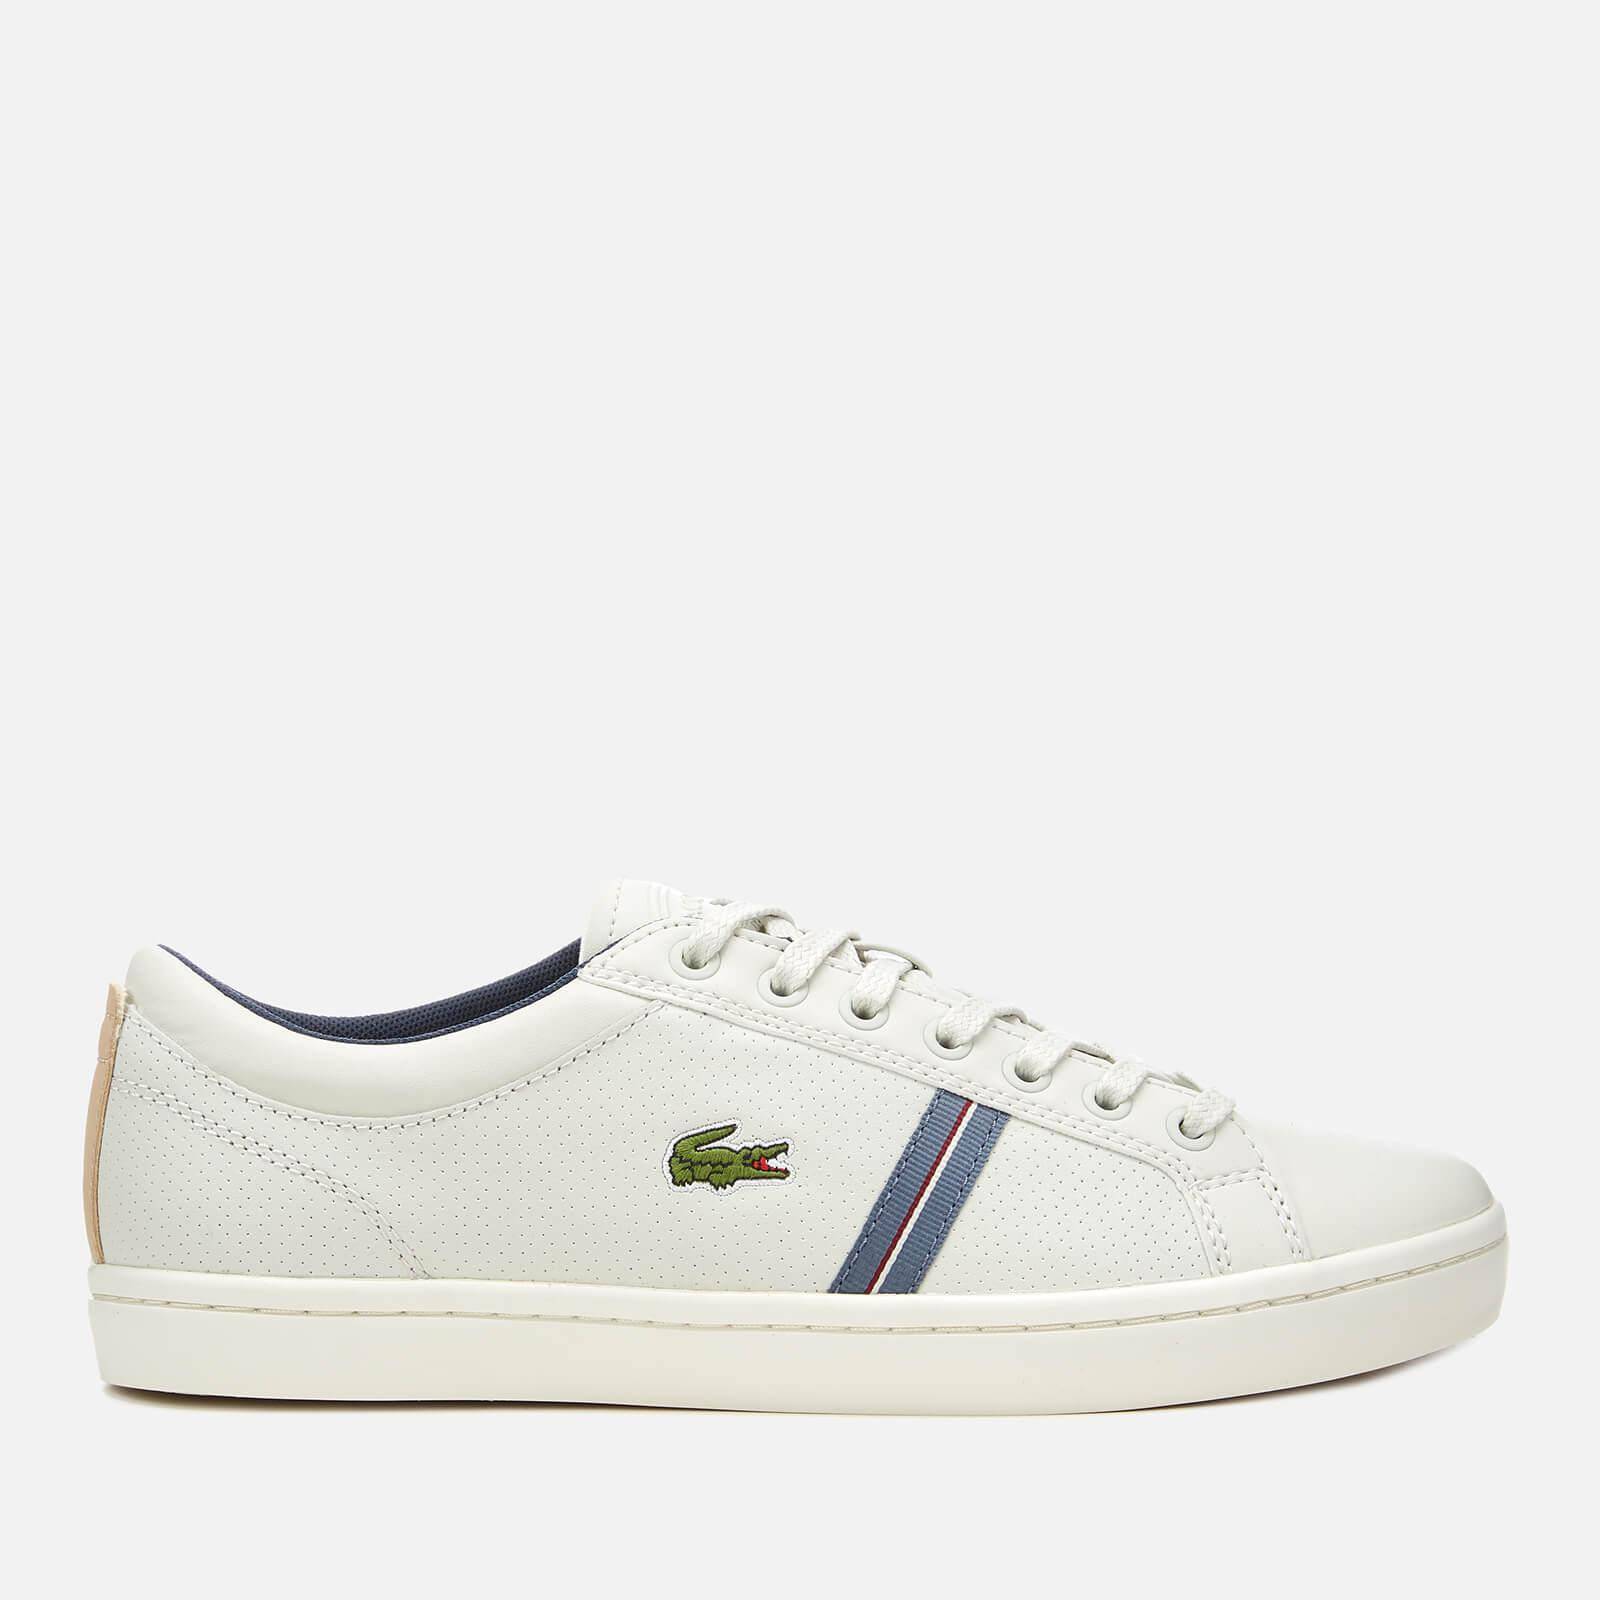 f6817ab865bec0 Lyst - Lacoste Straightset Sport 318 1 Leather Trainers in White for Men